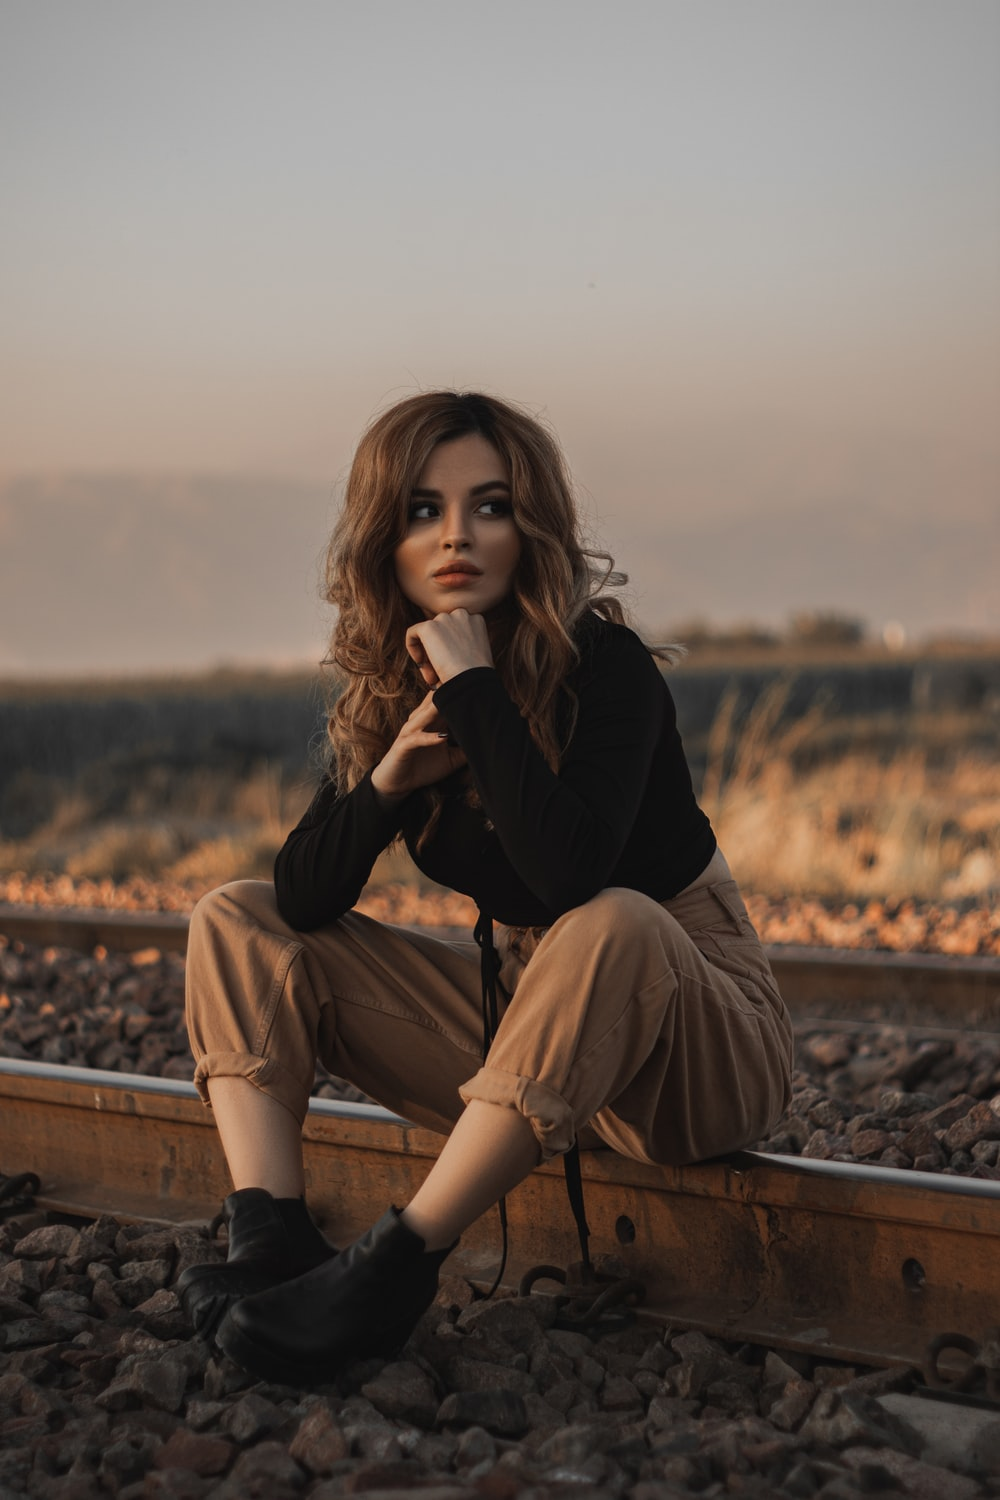 woman in black long sleeve shirt and brown pants sitting on brown wooden bench during daytime